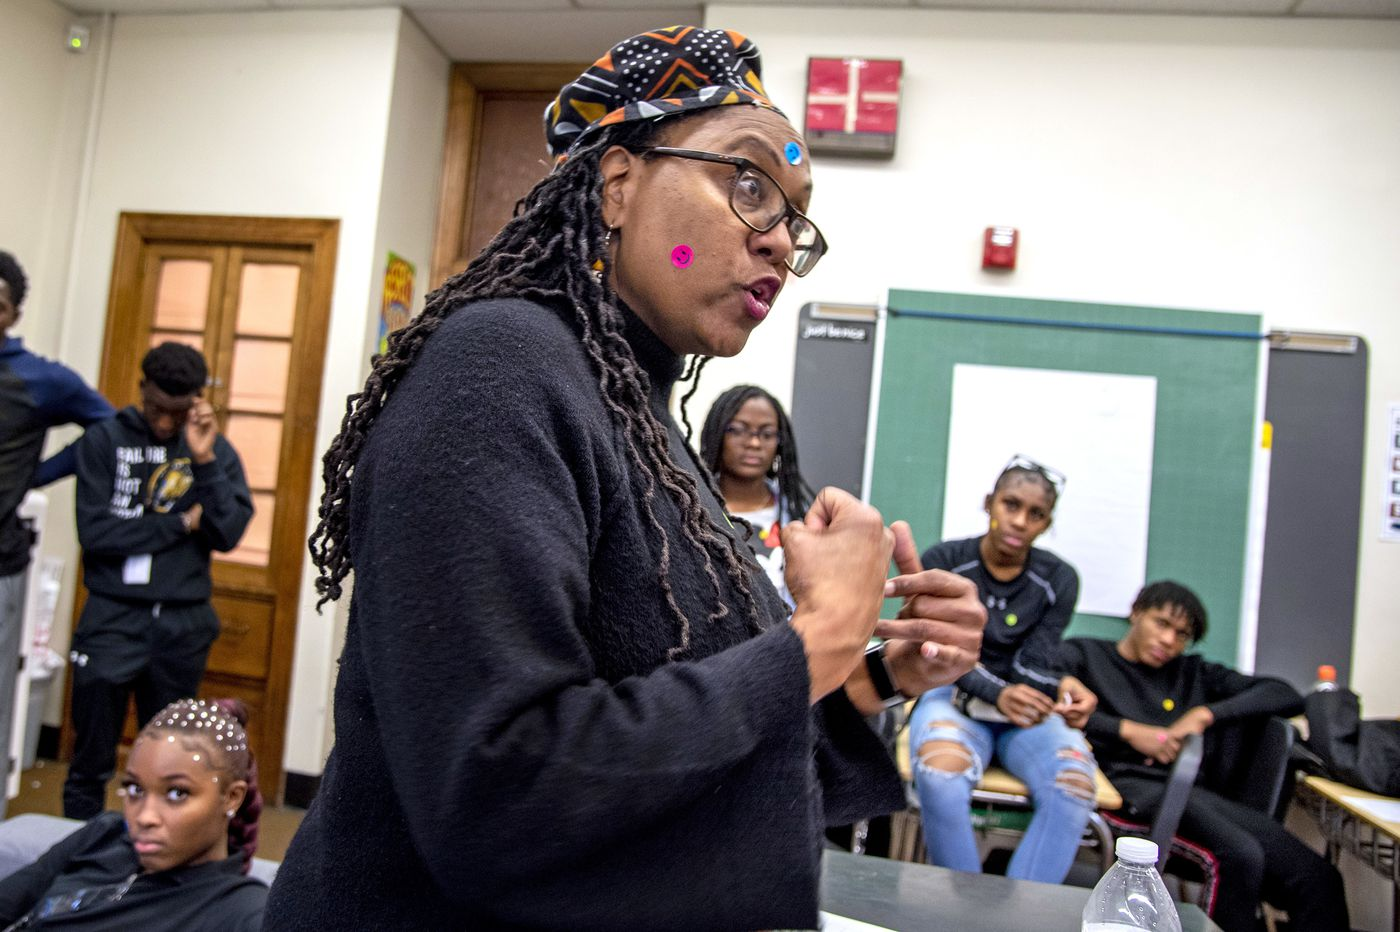 A Penn Wood High Teacher Wants to Give Students the Skills to Avoid Domestic Violence